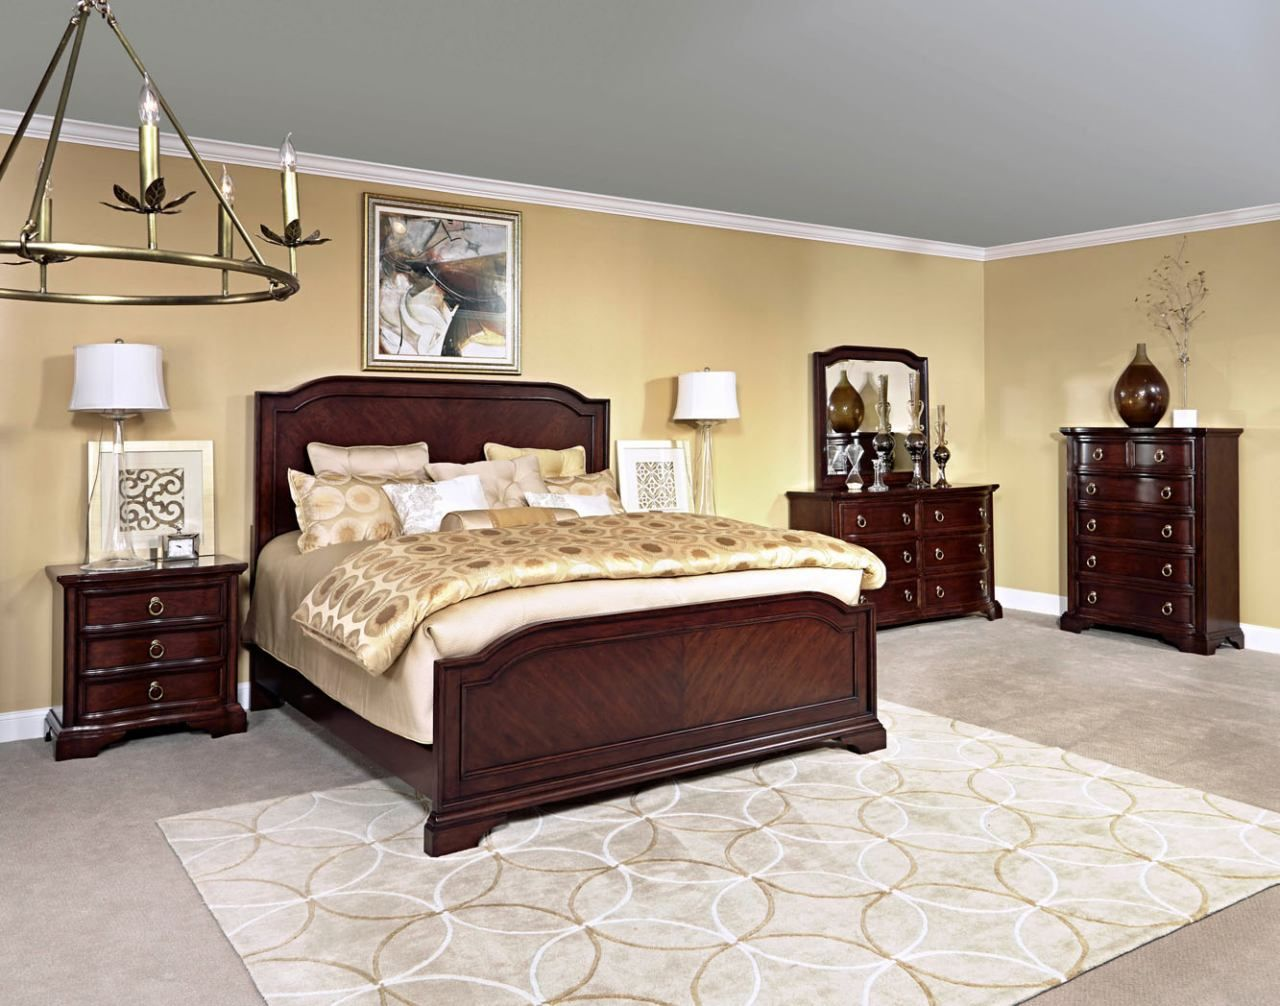 Shop For The Broyhill Furniture Elaina King Bedroom Group At Becker  Furniture World   Your Twin Cities, Minneapolis, St.